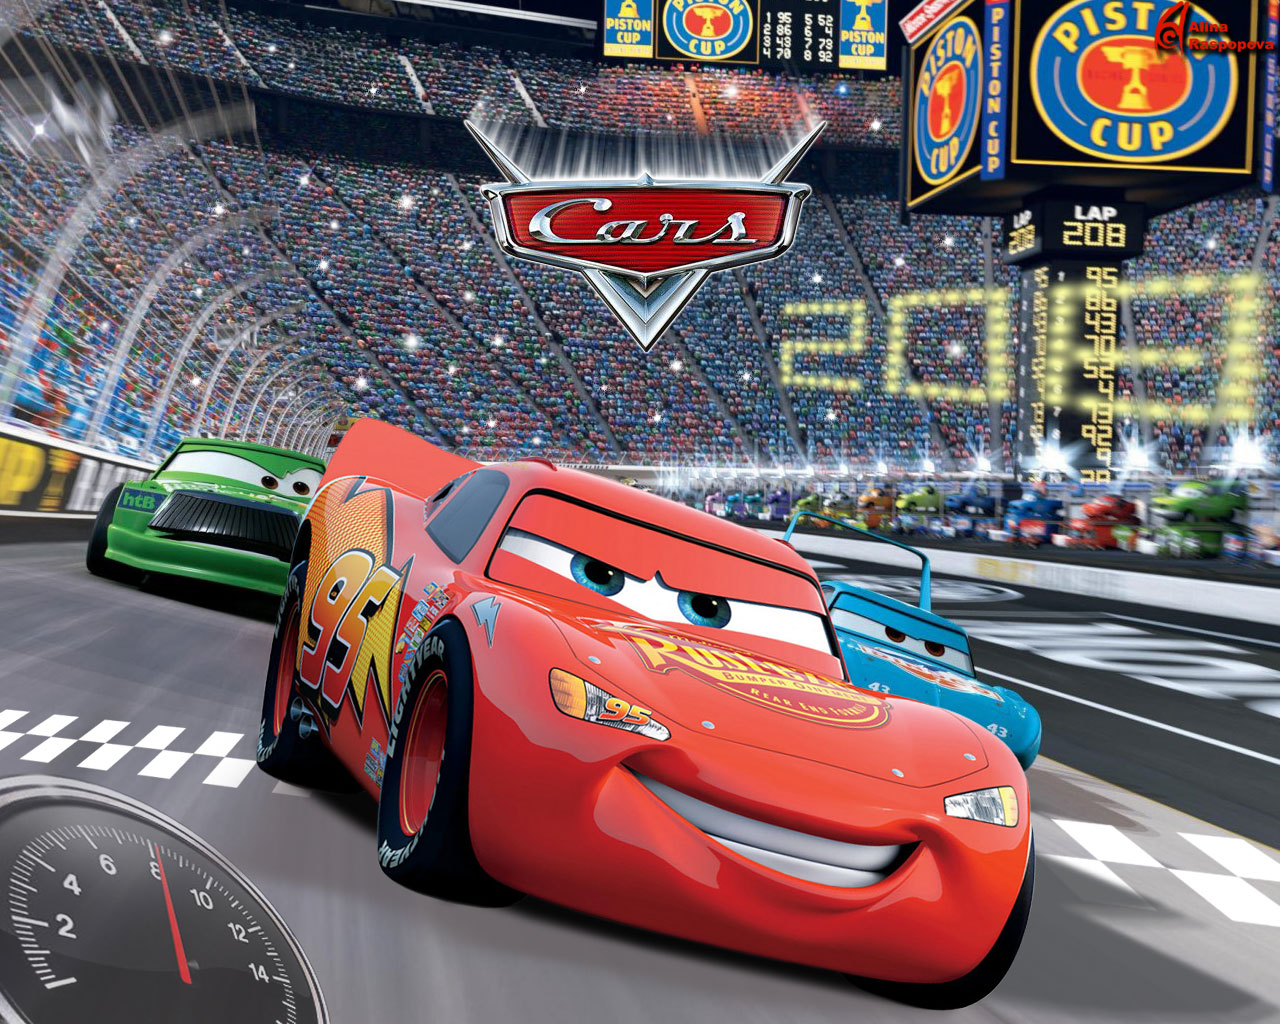 Disney Cars Wallpapers Free Download: 301 Moved Permanently